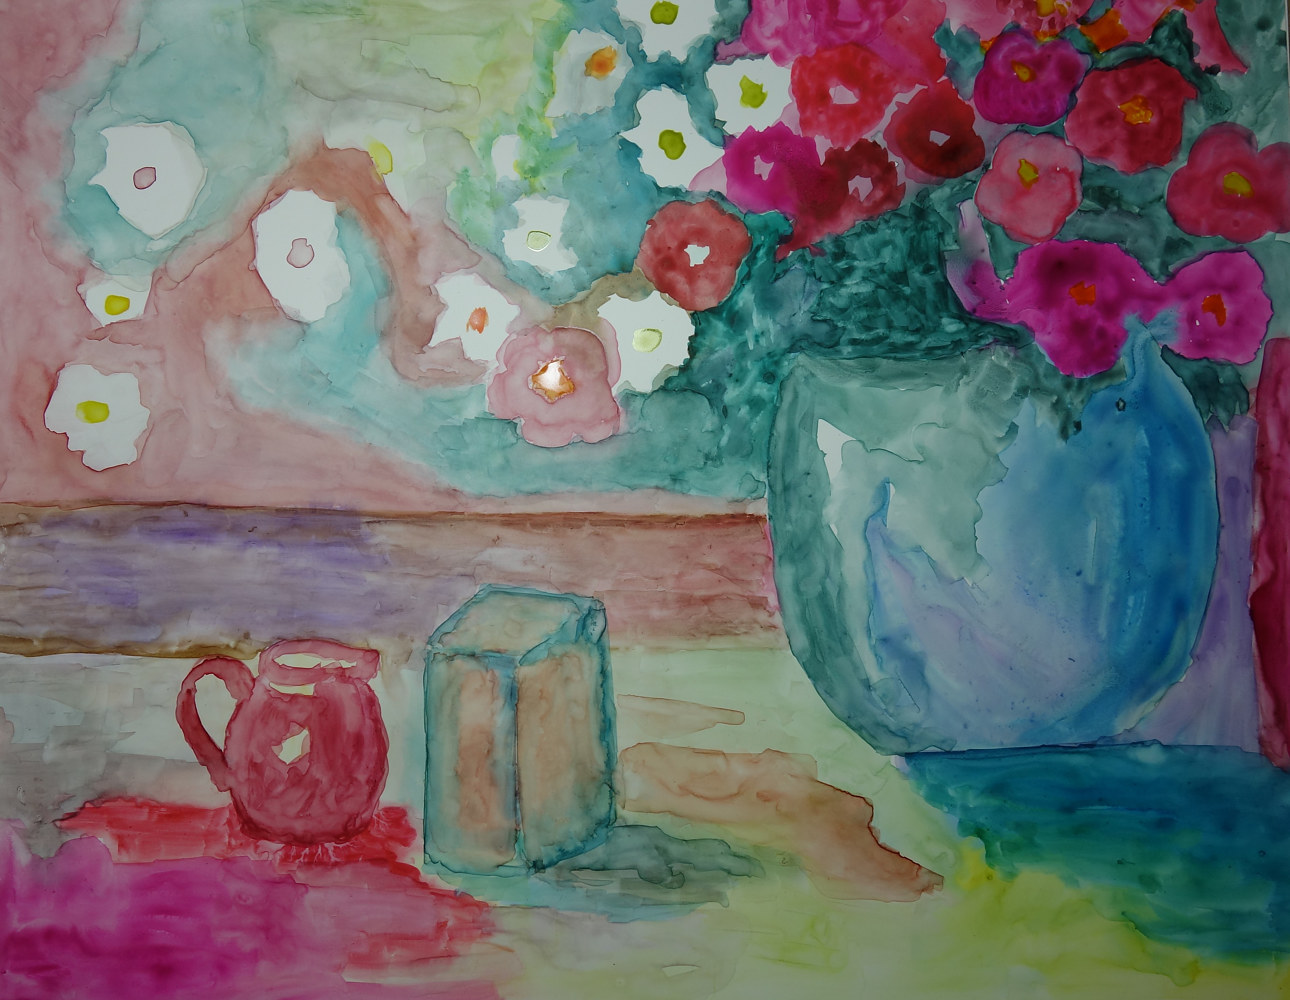 Watercolor Vase and Wallpaper by Joan Morris